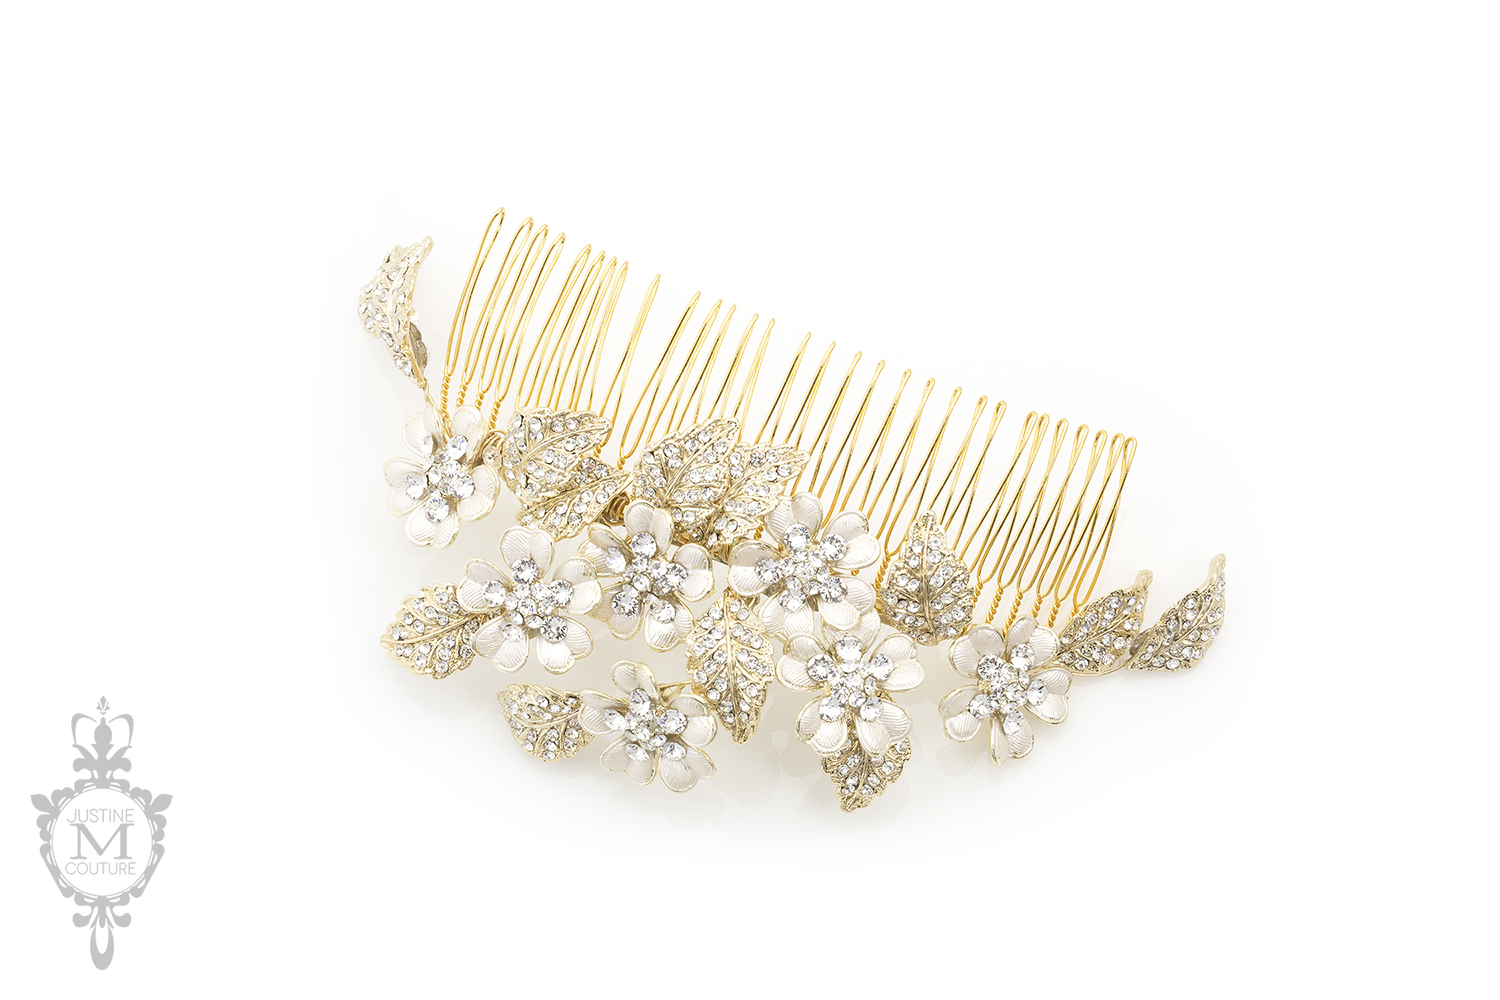 Coraline Headpiece Comb Large Justine M Couture Bridal Veils Jewelry And Accessories